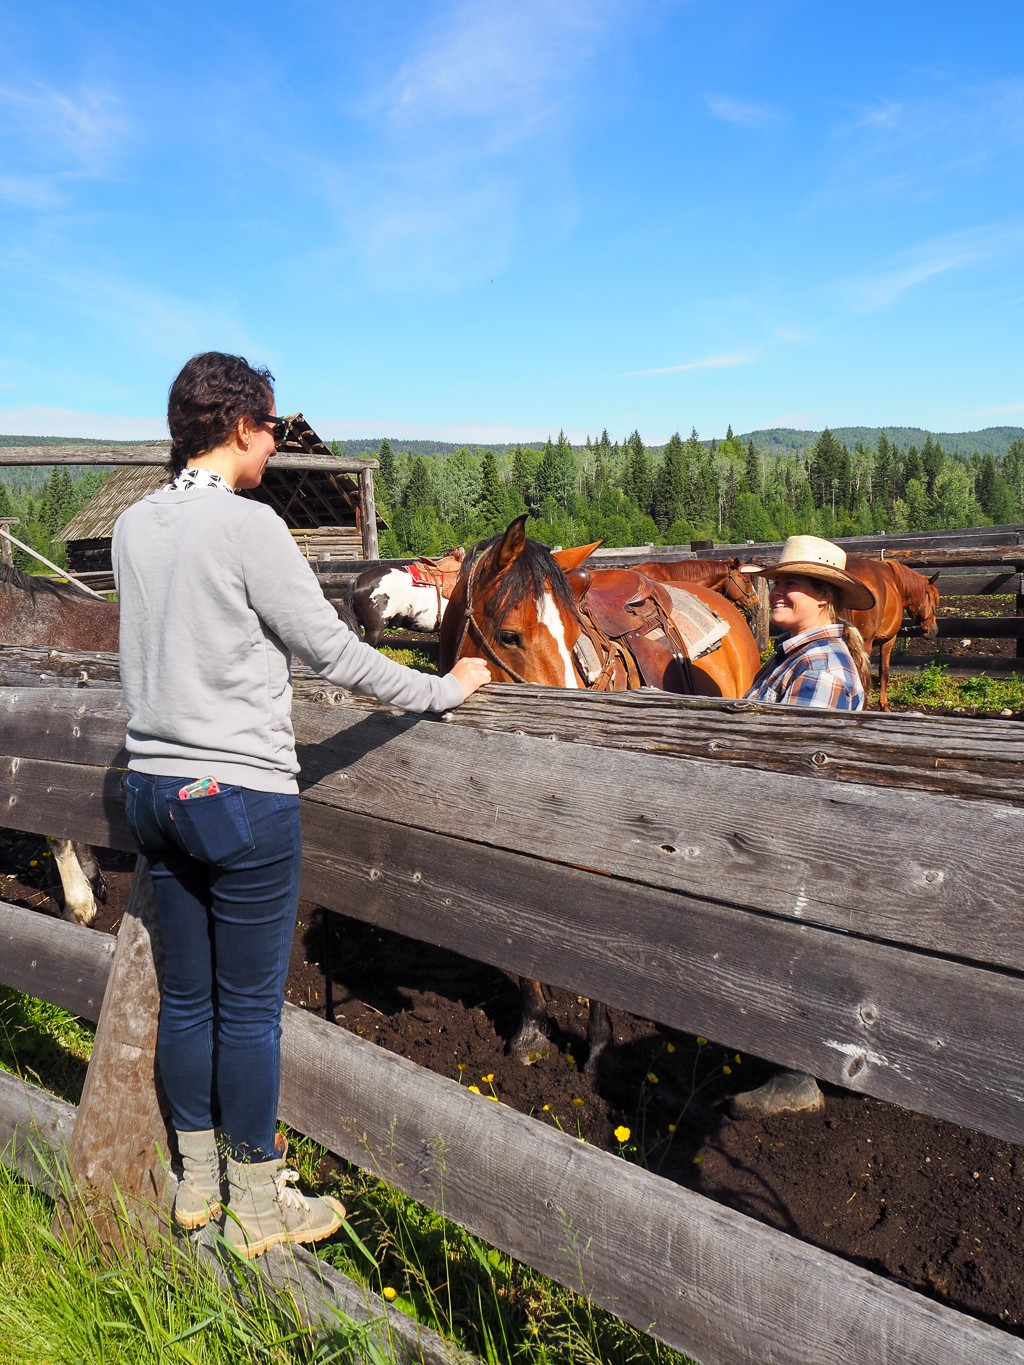 Canada, Wells Gray, British Columbia, Travel, Road Trip, Horseback riding